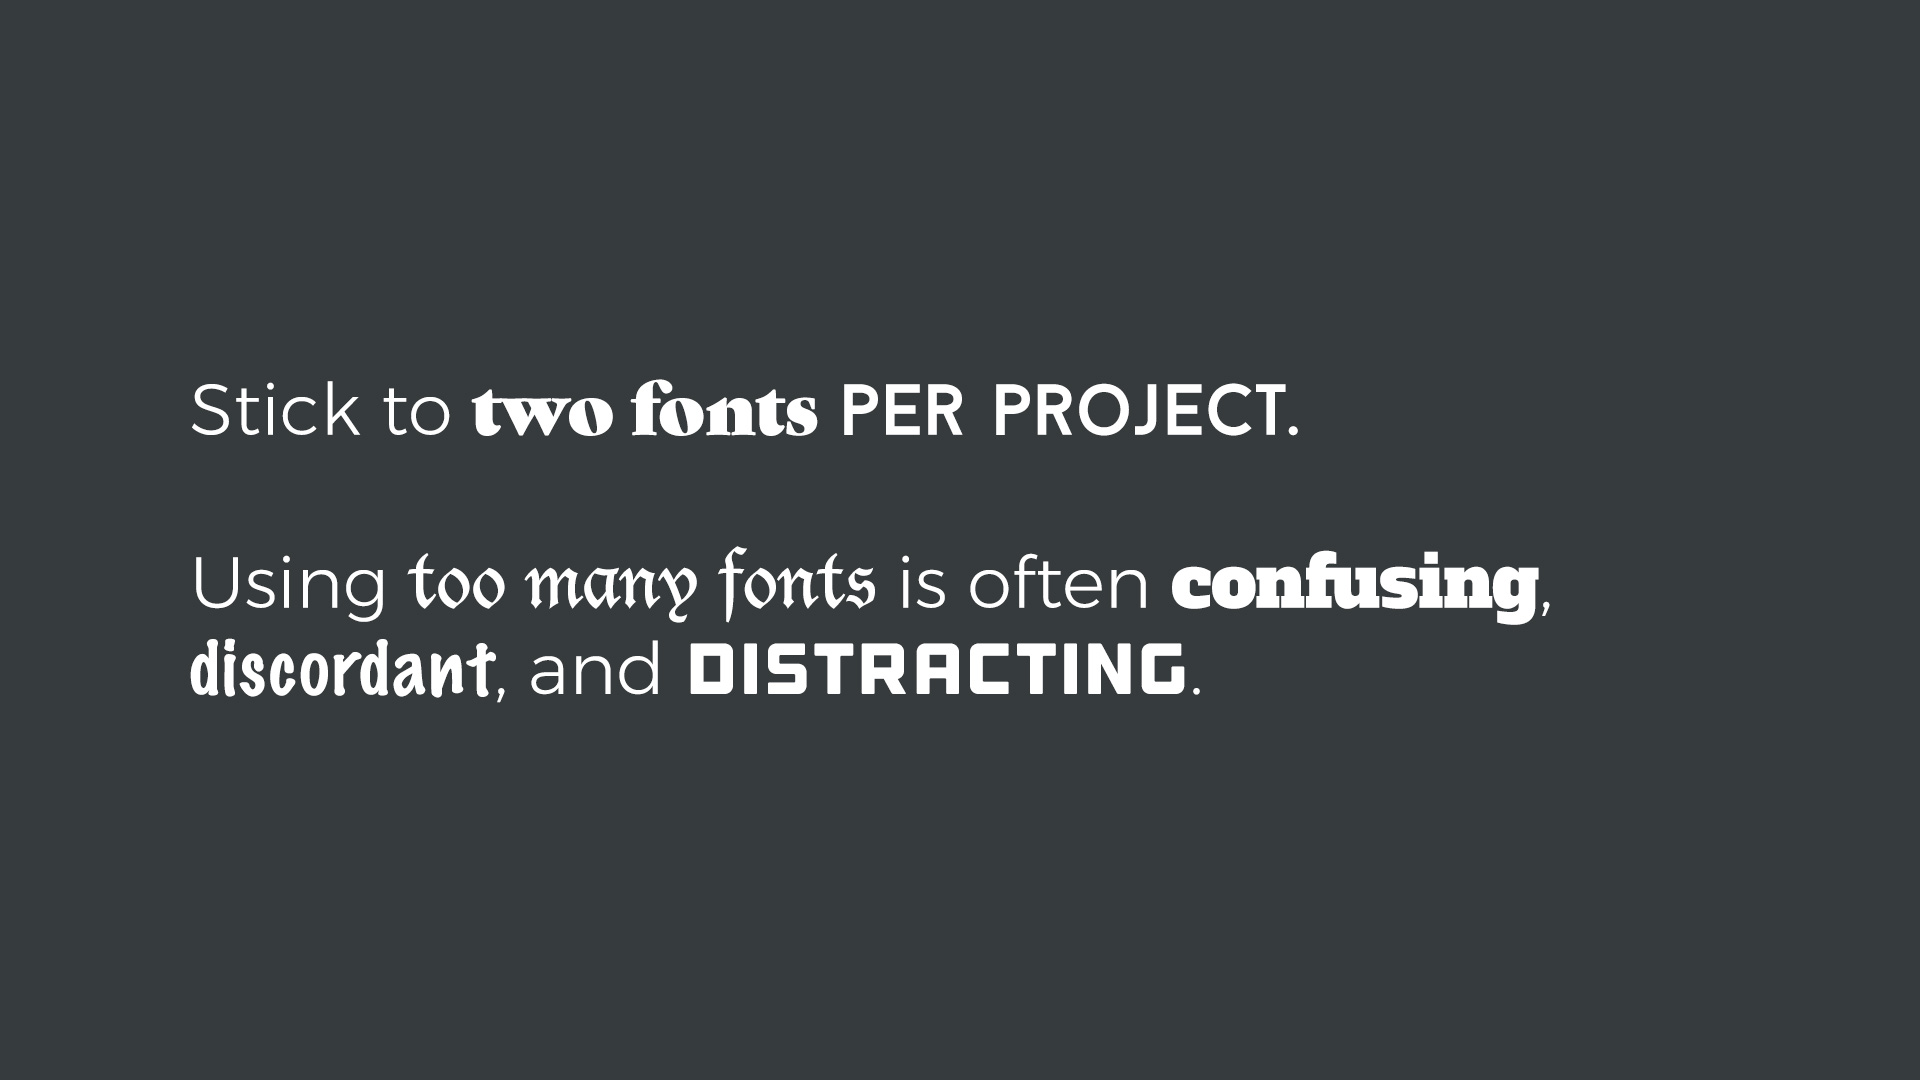 Two Fonts Per Project